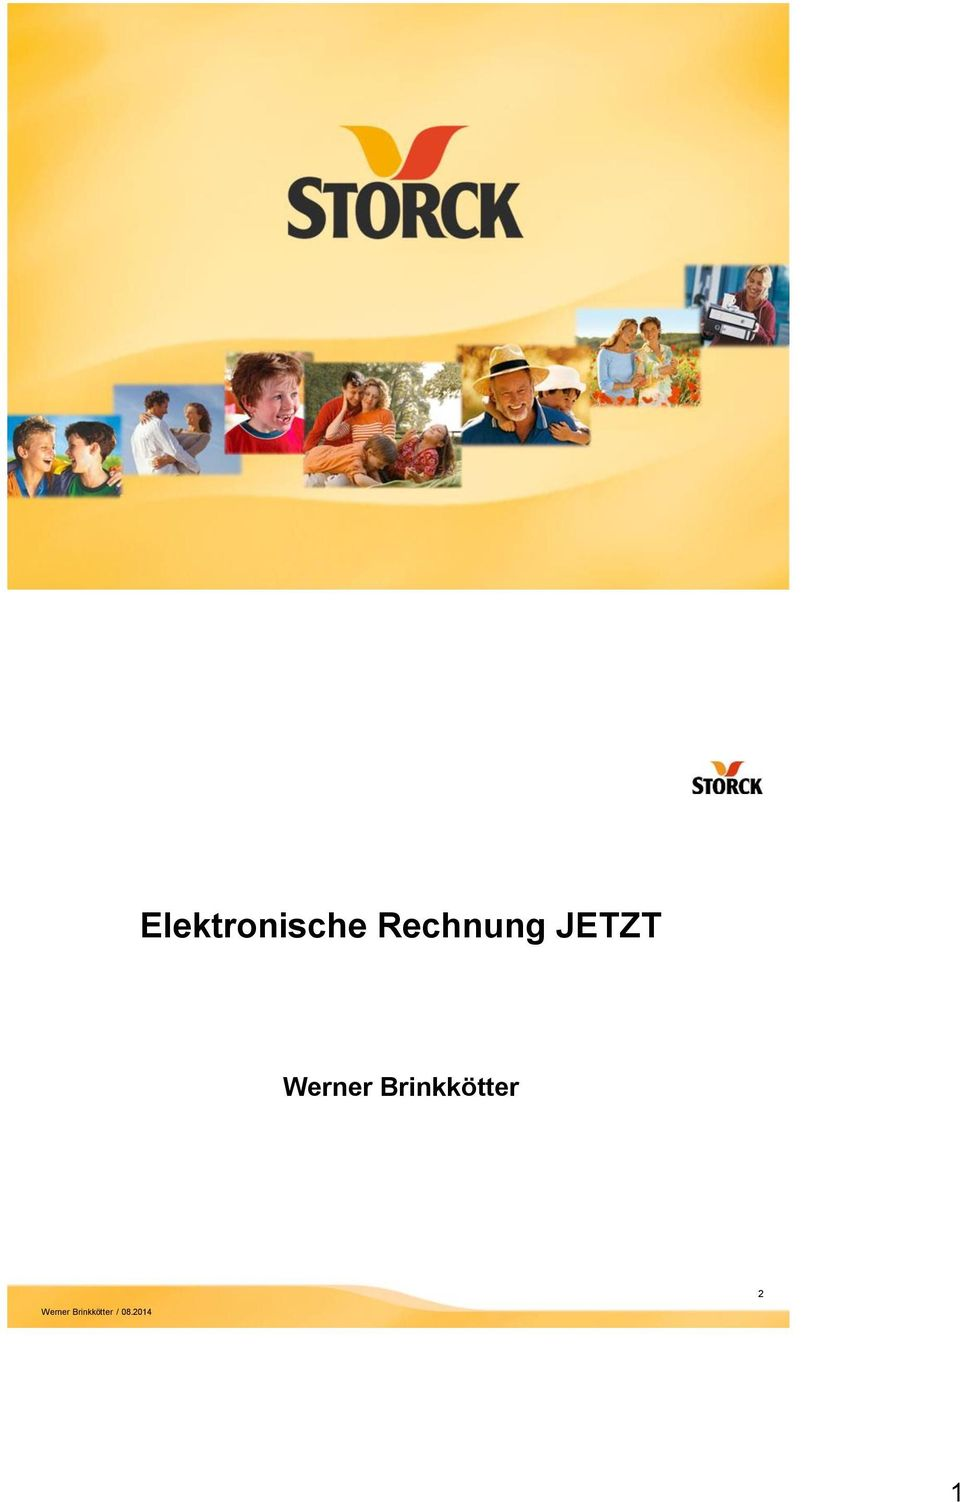 elektronische rechnung jetzt werner brinkk tter pdf. Black Bedroom Furniture Sets. Home Design Ideas